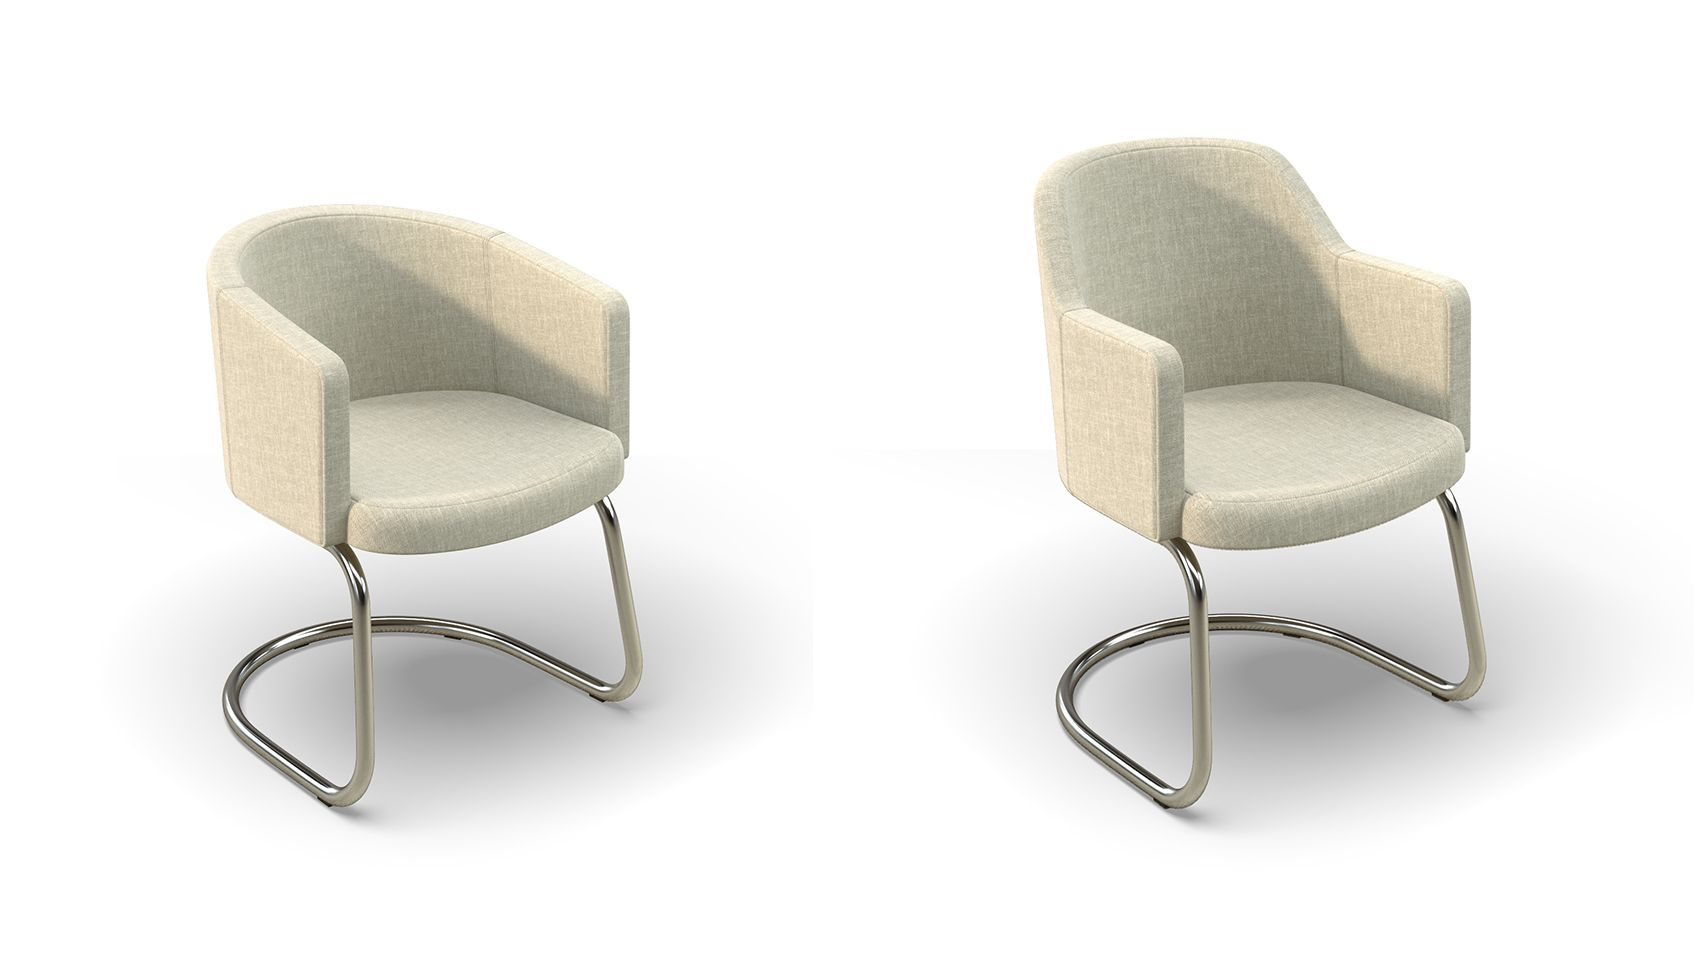 Choose different seat backs and bases for the Cinque cafe chair